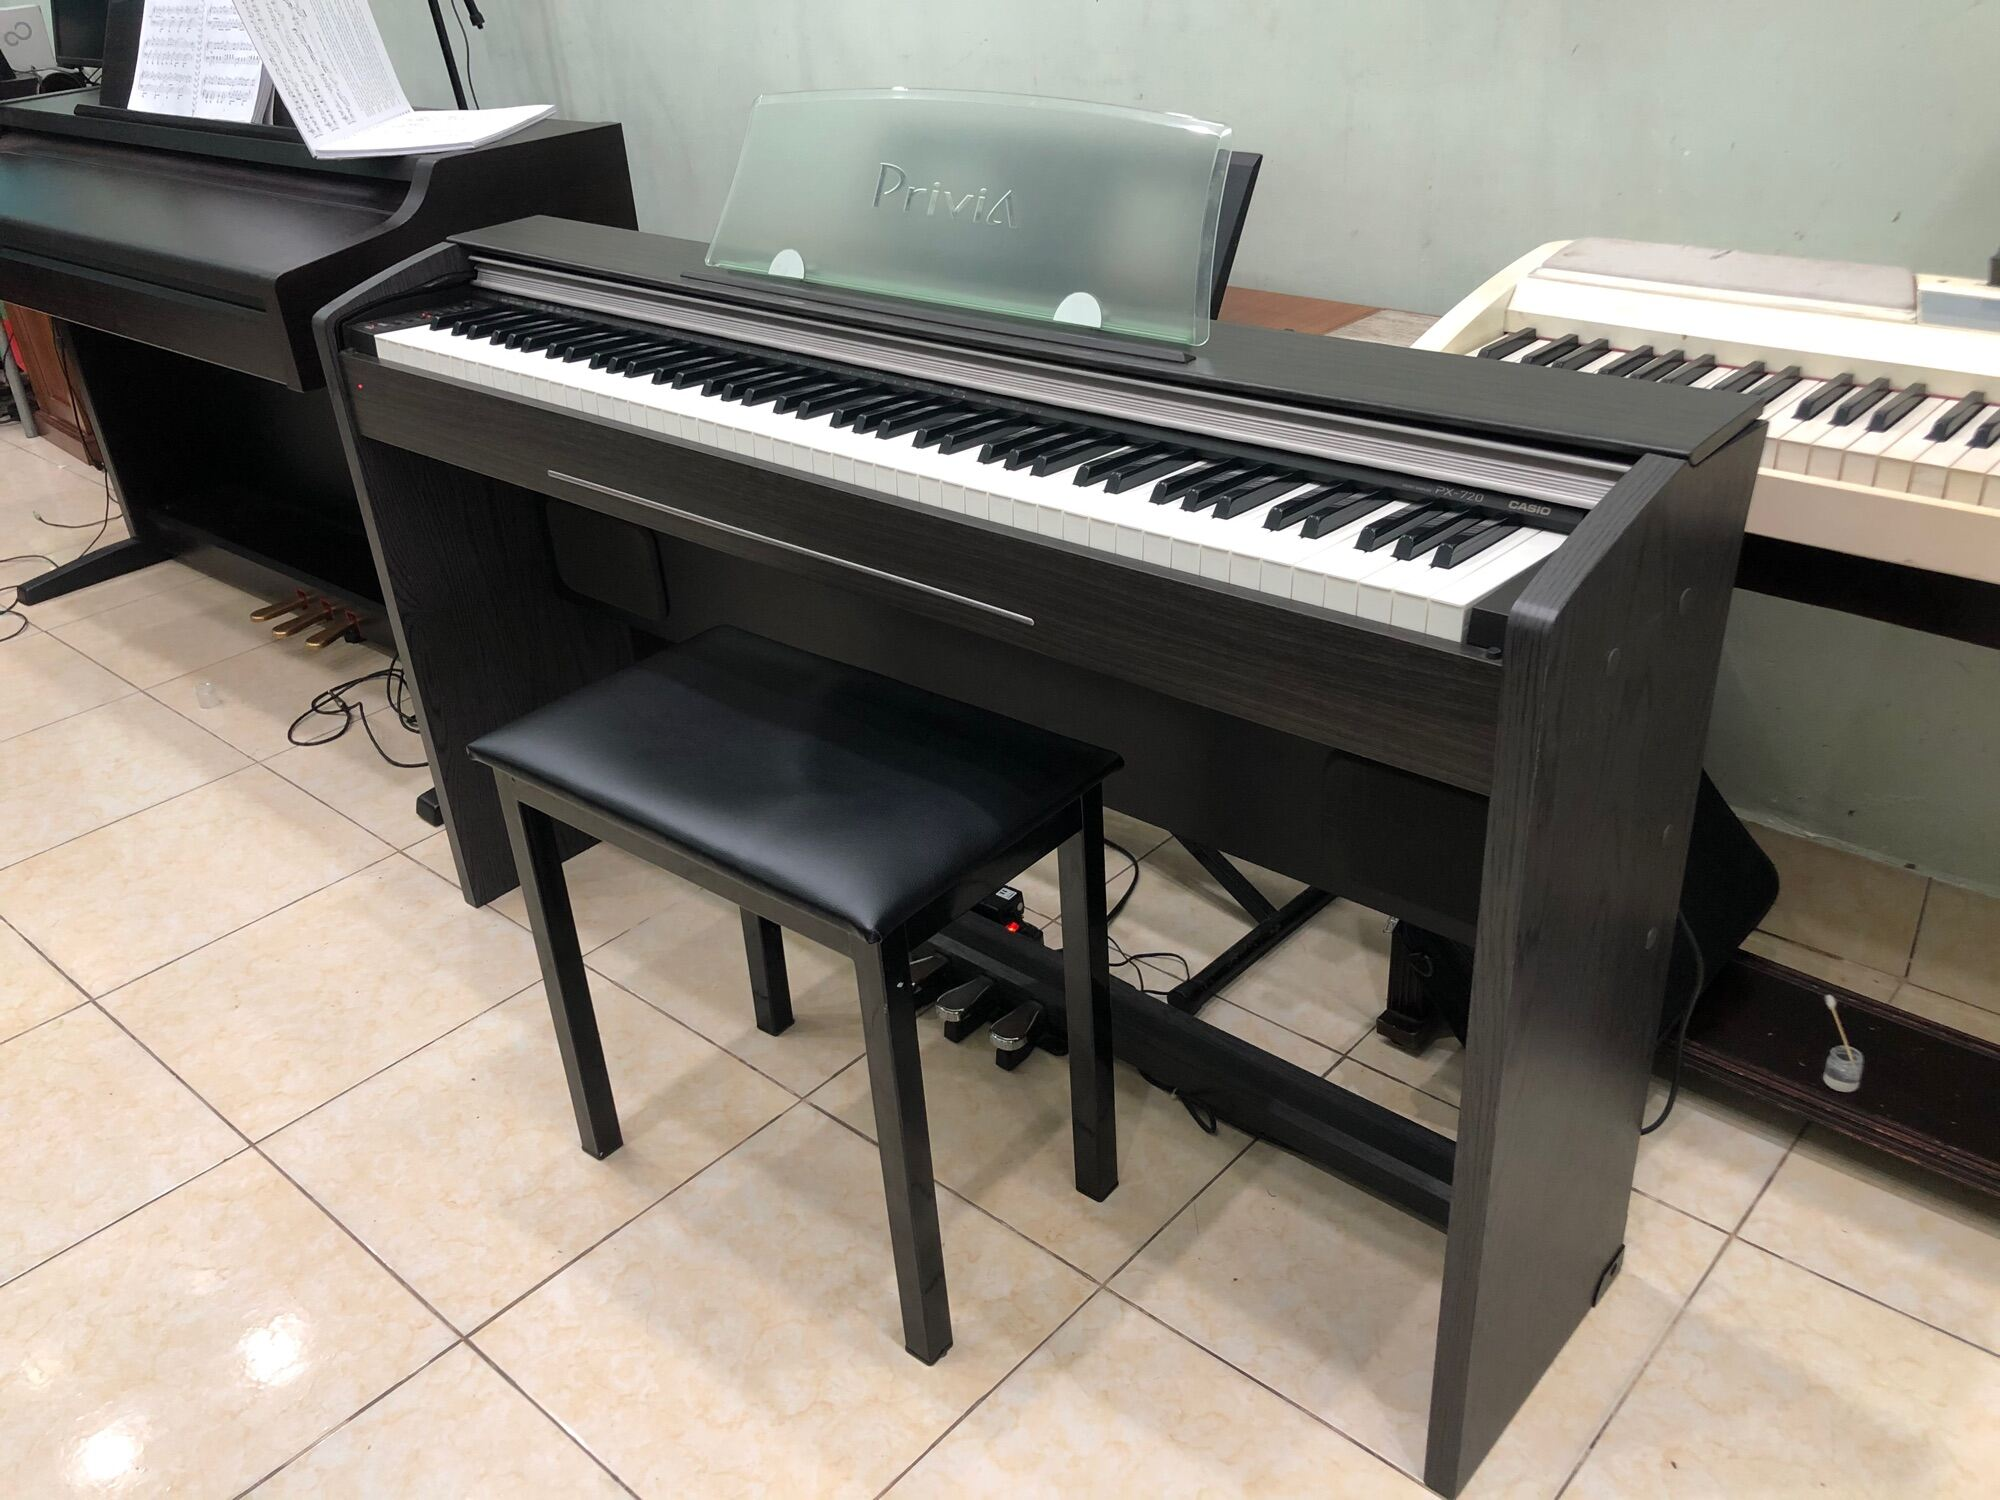 Piano điện Casio Px 720